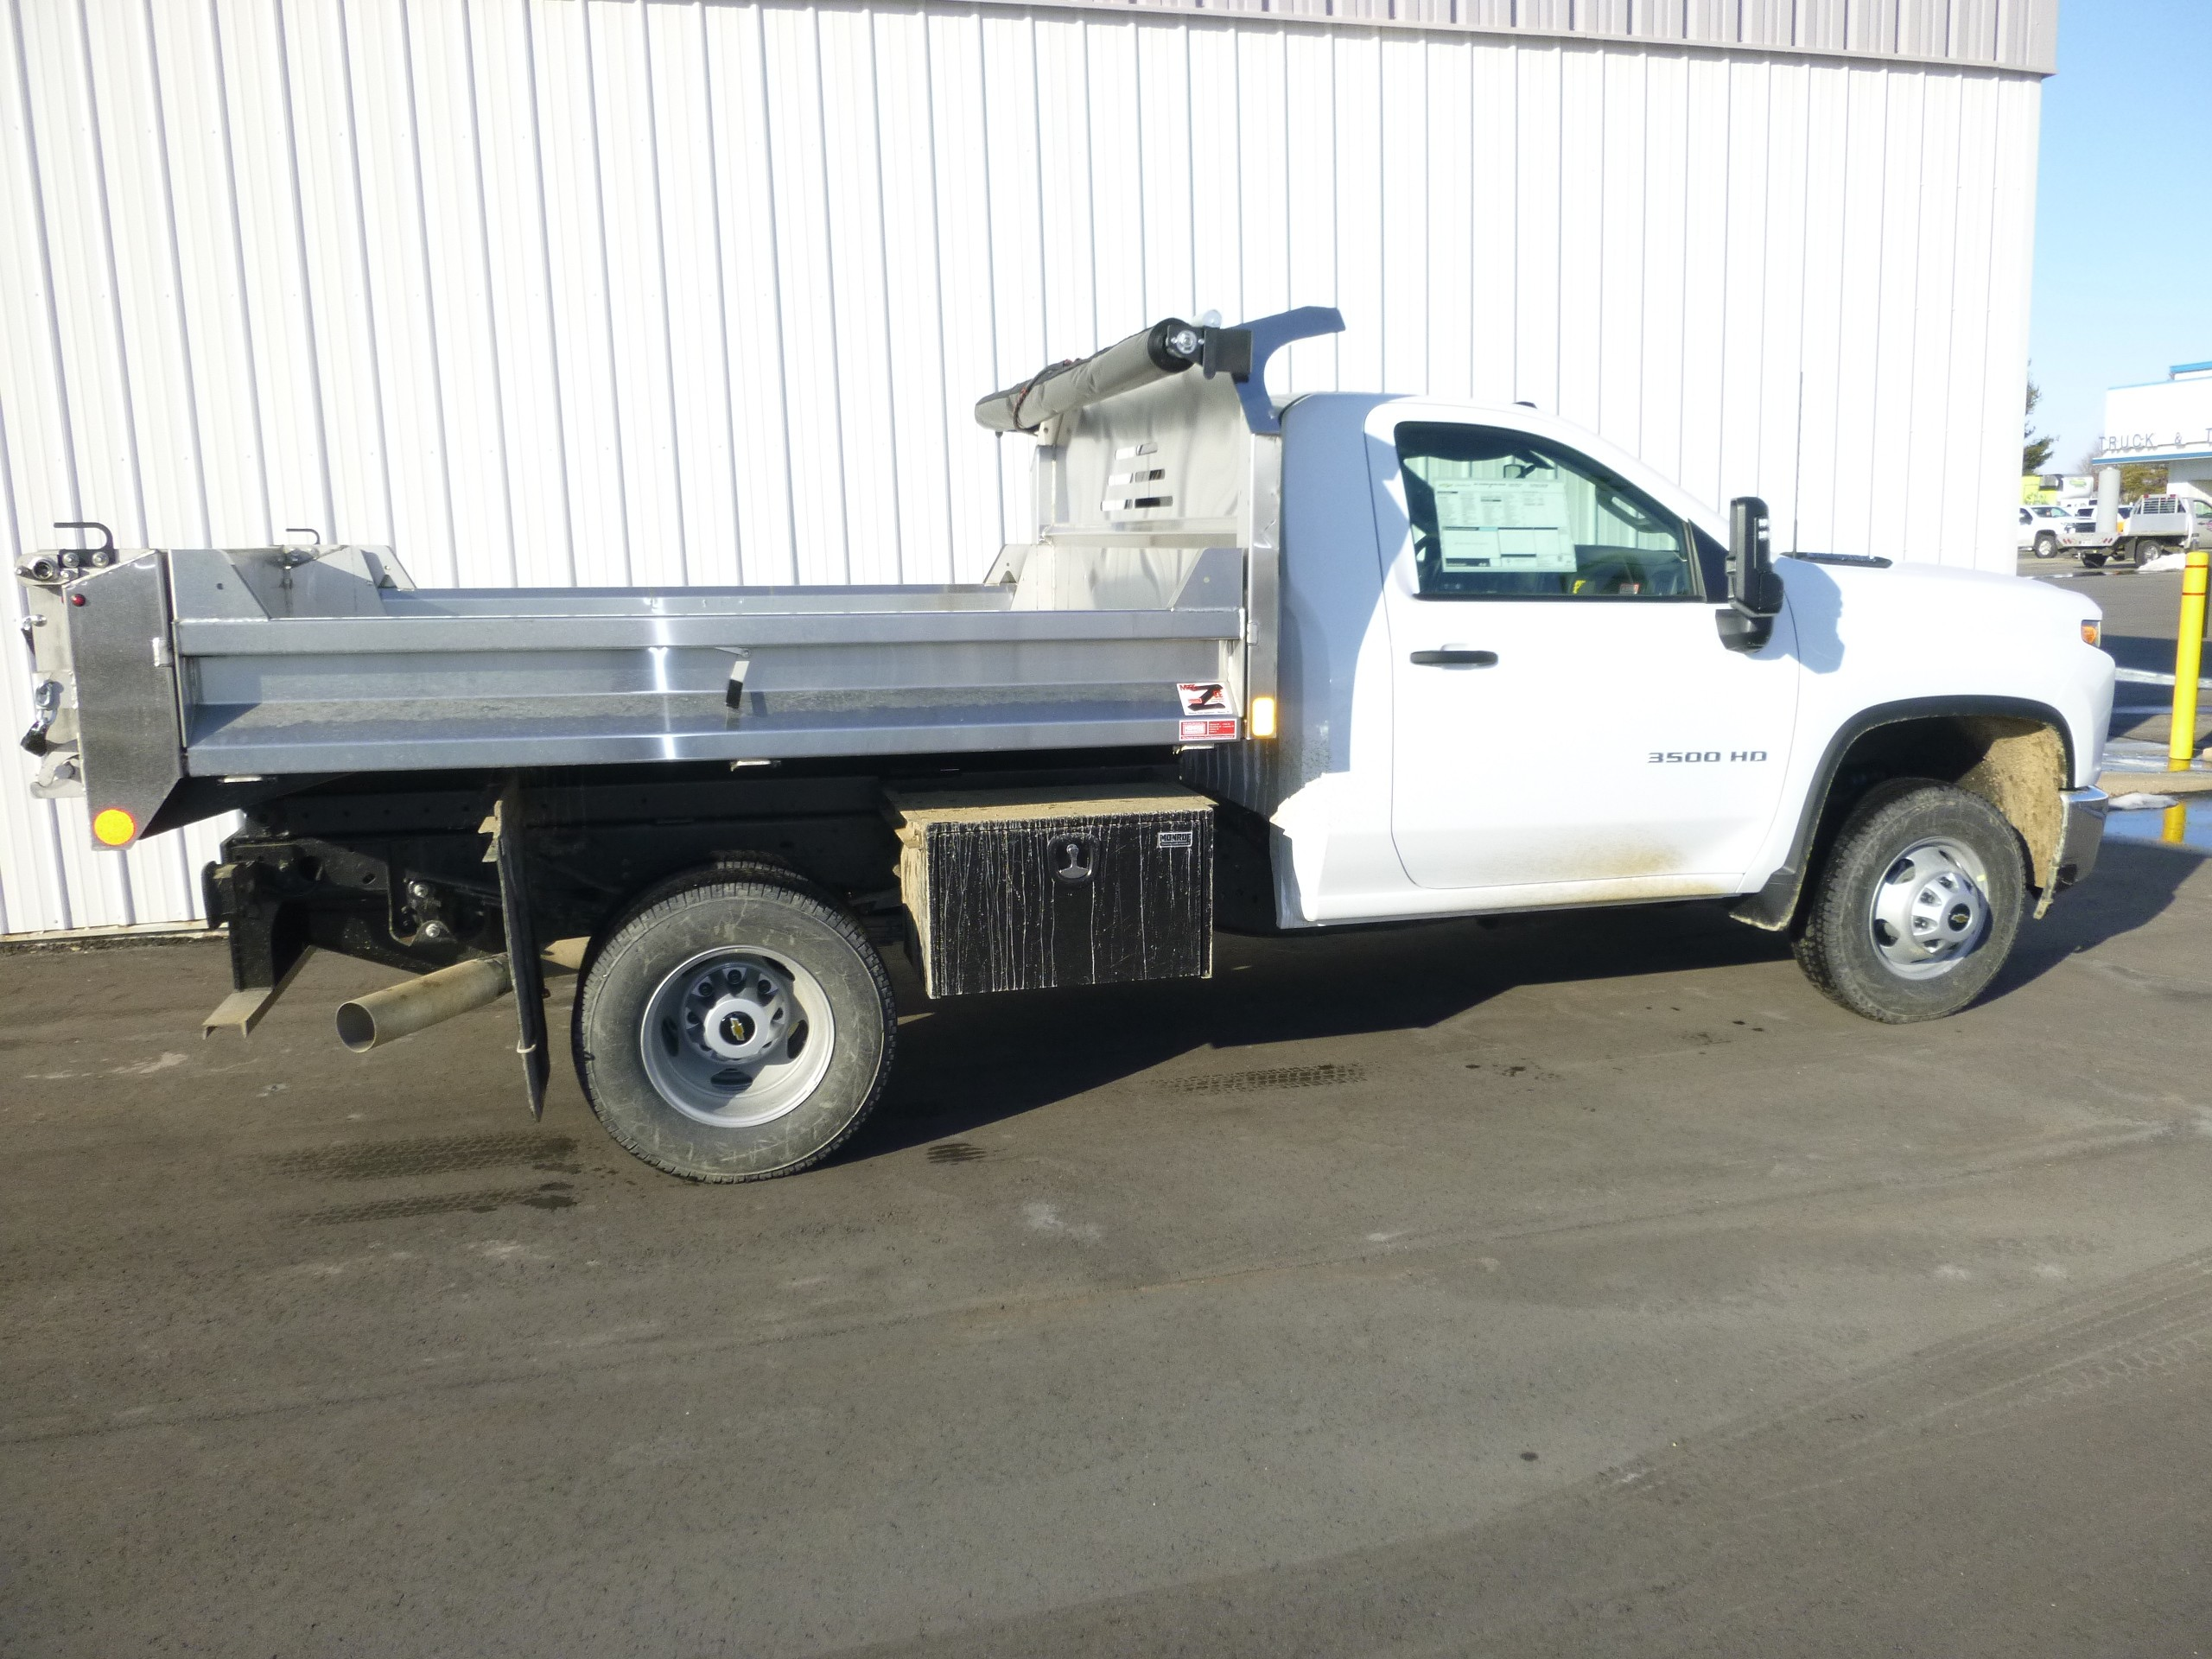 New, 2021, Chevrolet, Chevy 3500 HD 4X4 9' Dump, Dump Trucks